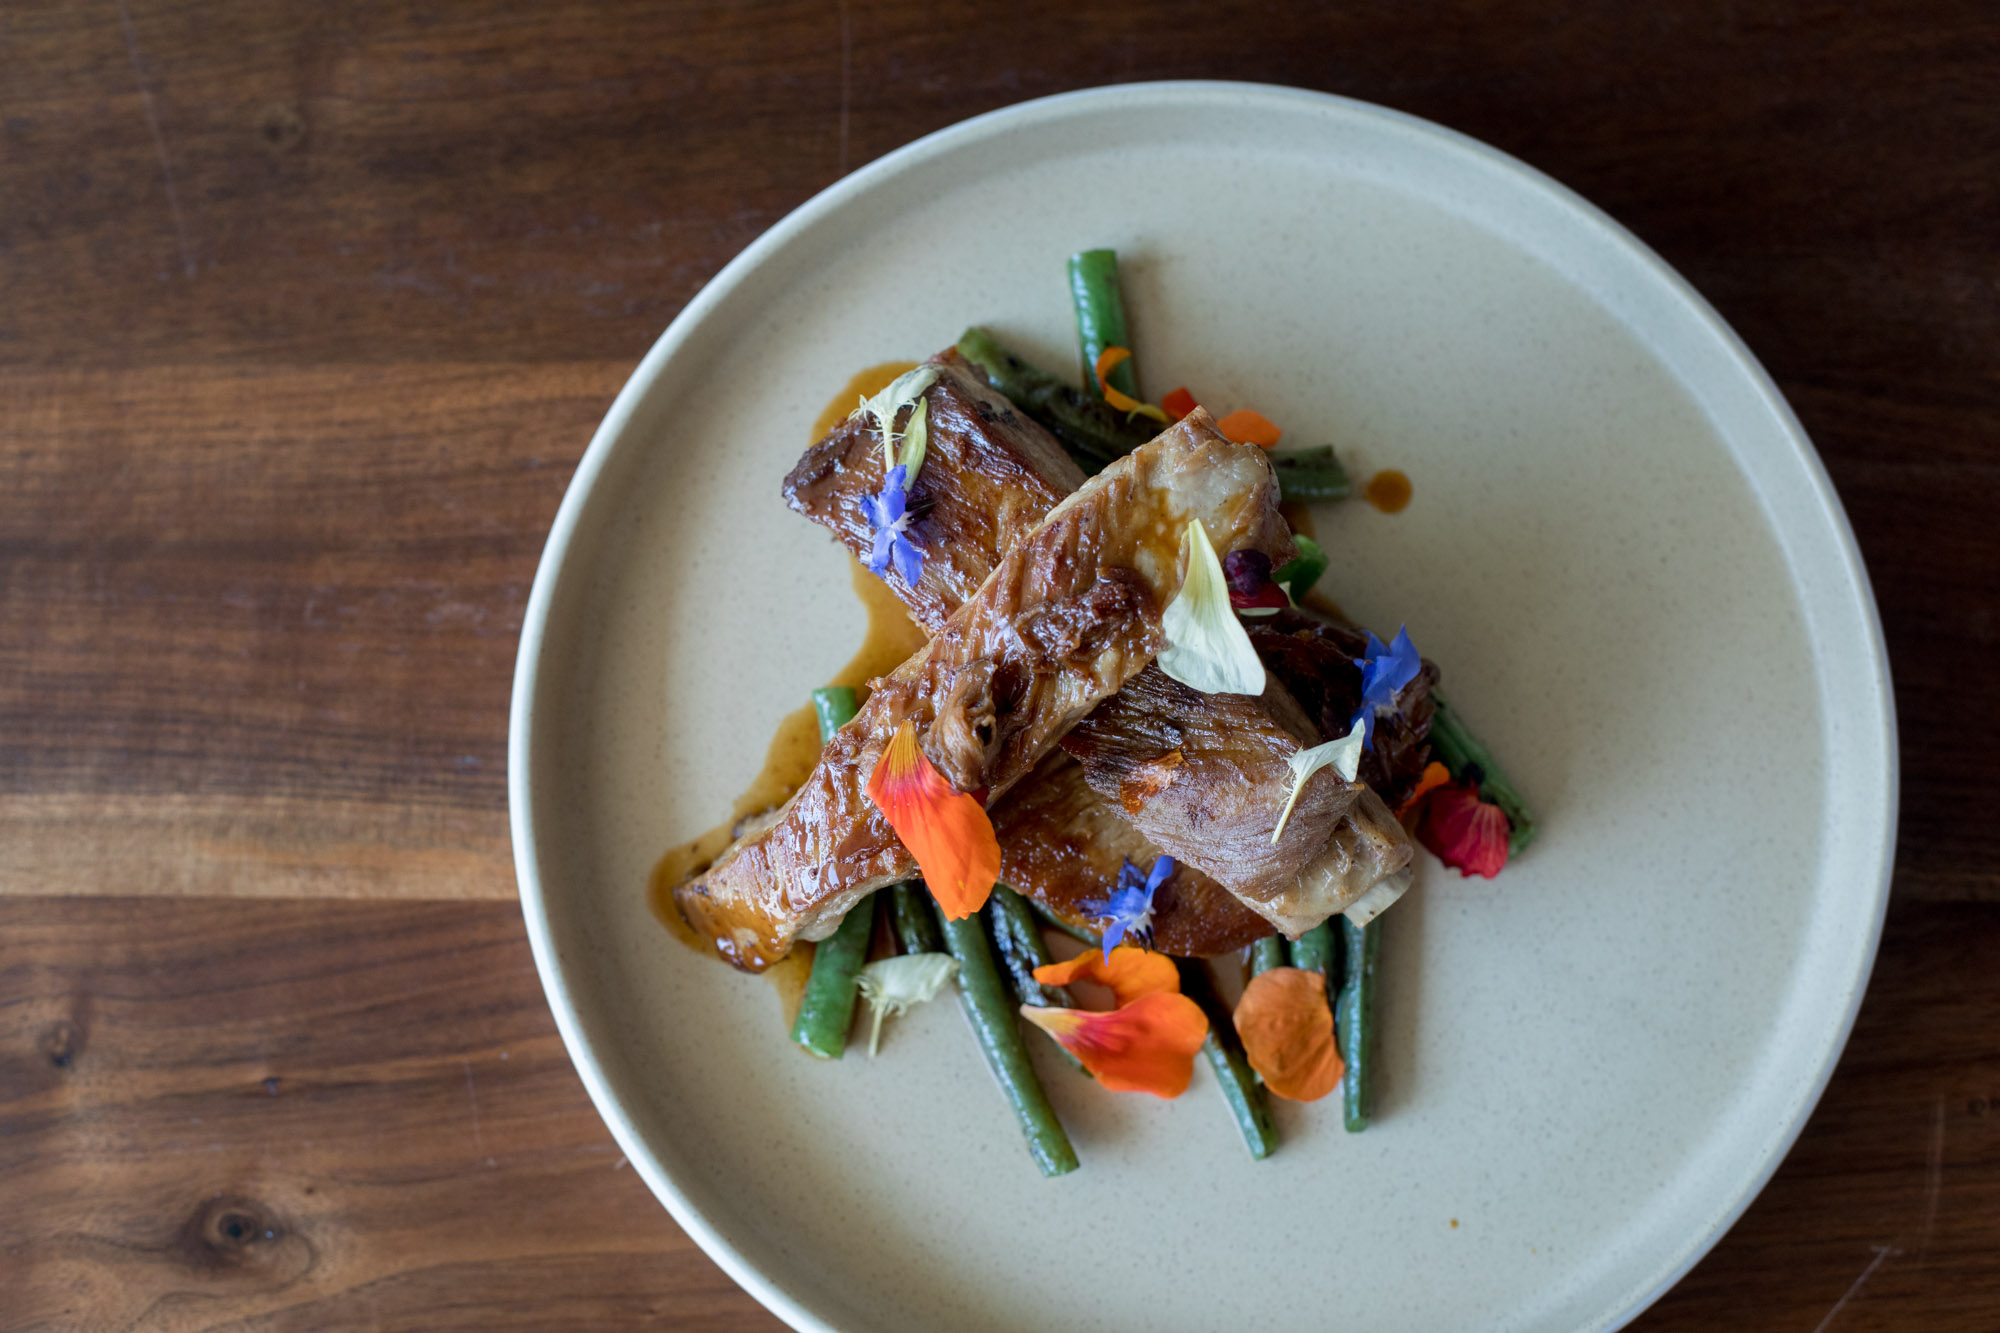 Magna chef Carlo Lamagna dresses up his father's adobo with edible flowers